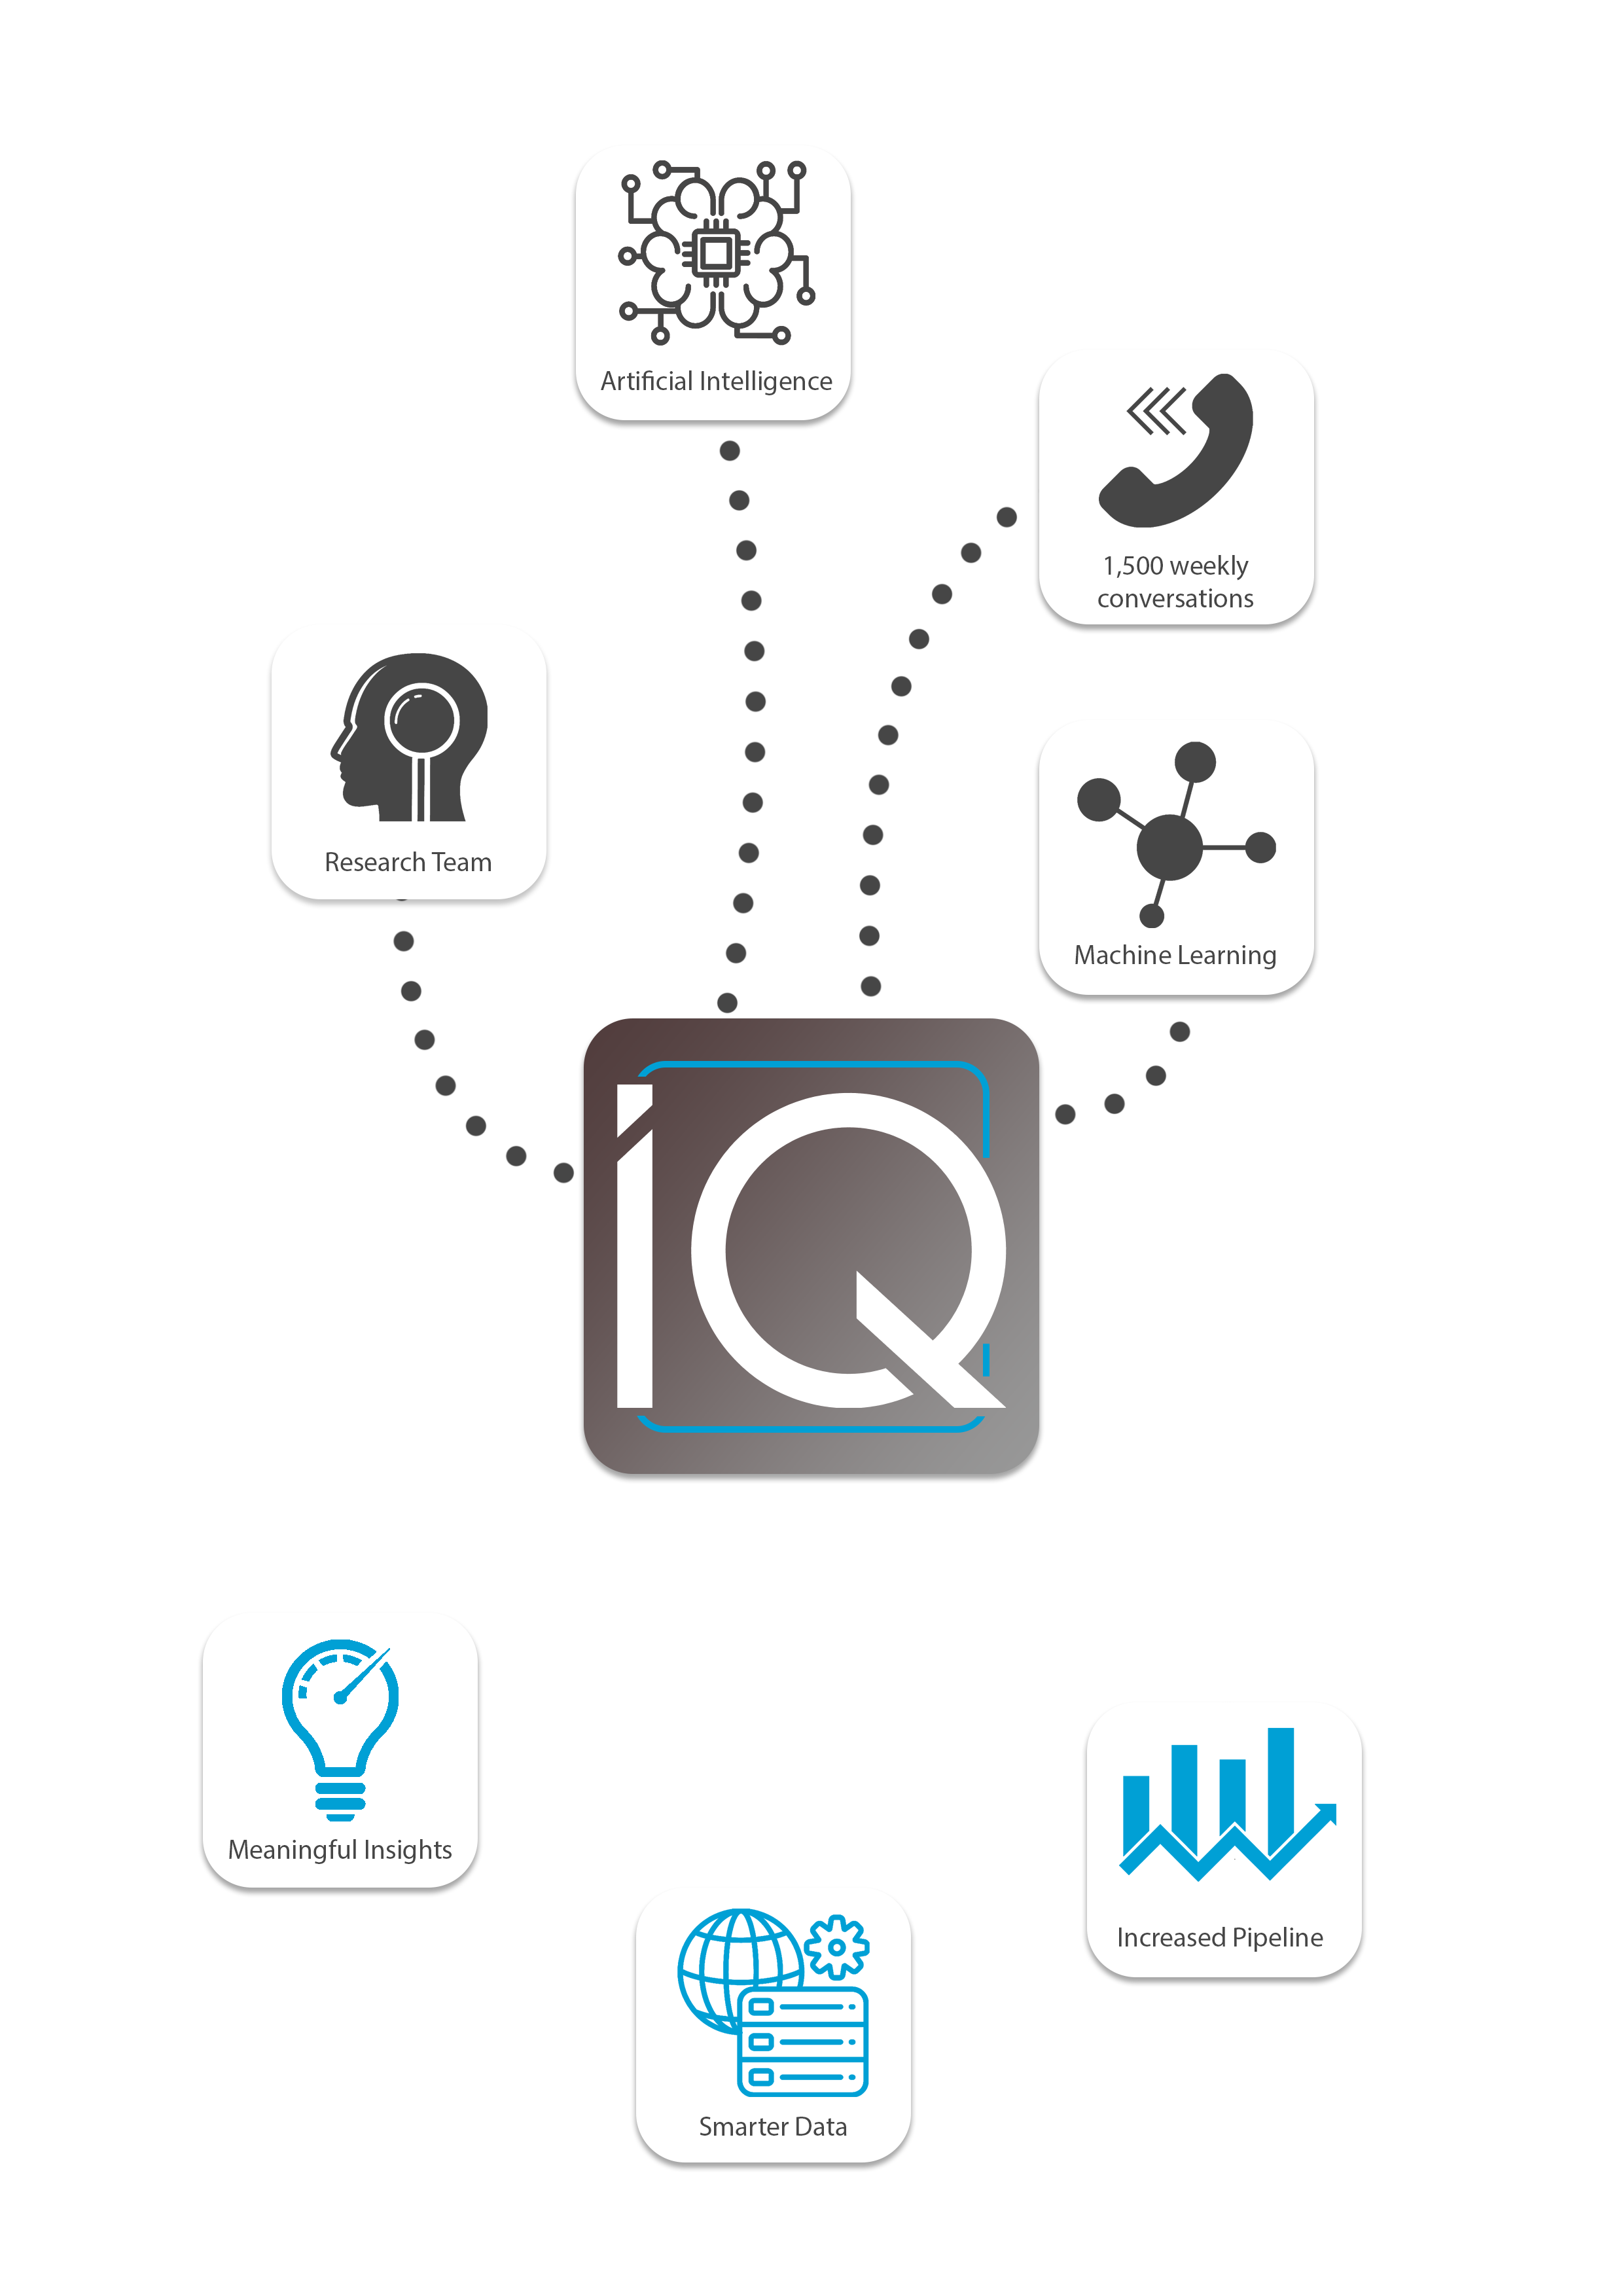 Infographic Describing EngageIQ work flow and technology